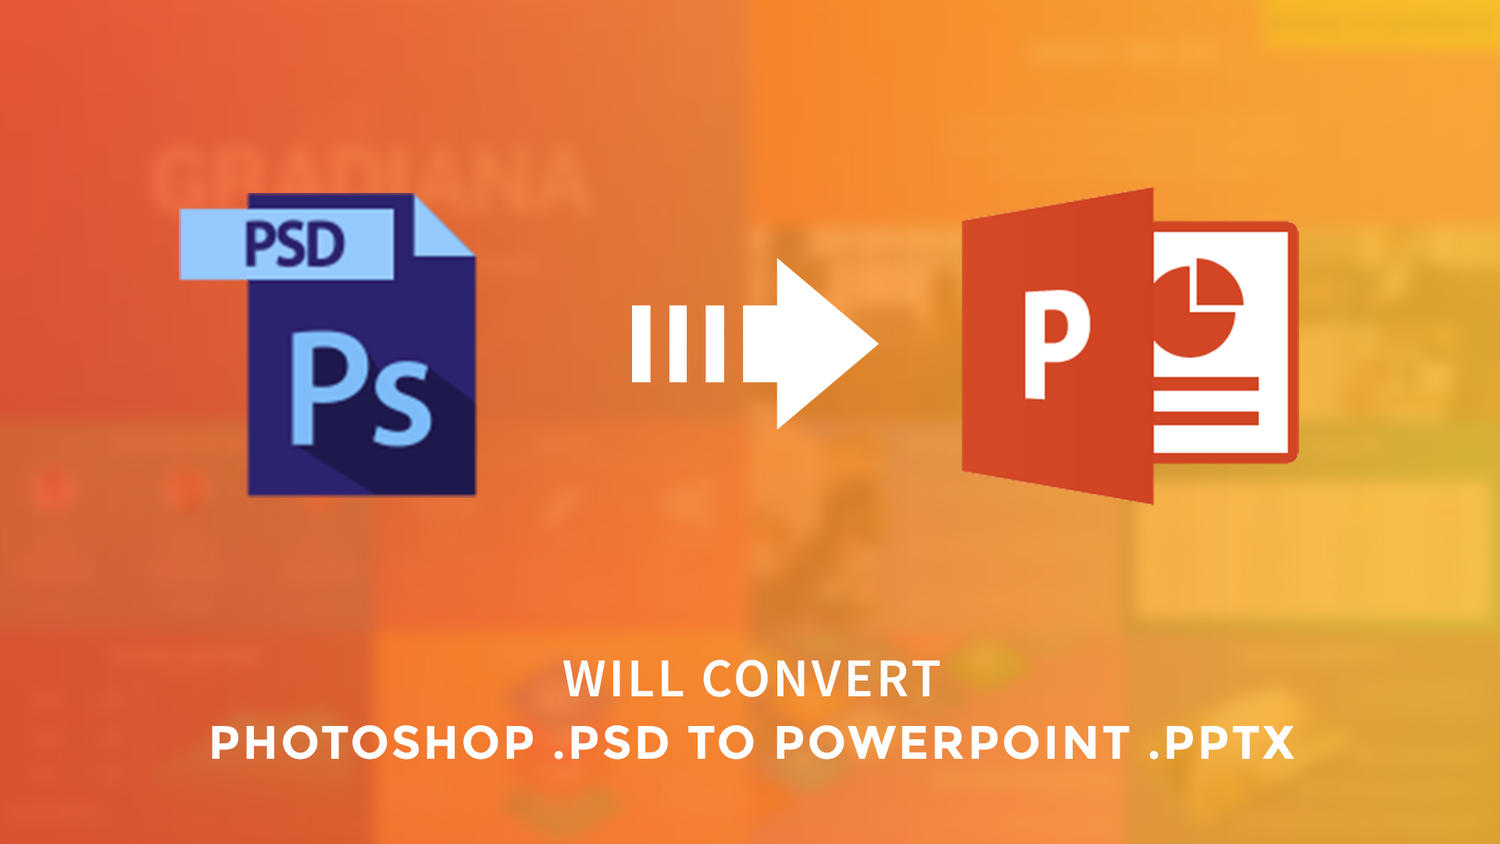 Photoshop psd to powerpoint presentation pptx by arvaone on envato photoshop psd to powerpoint presentation pptx toneelgroepblik